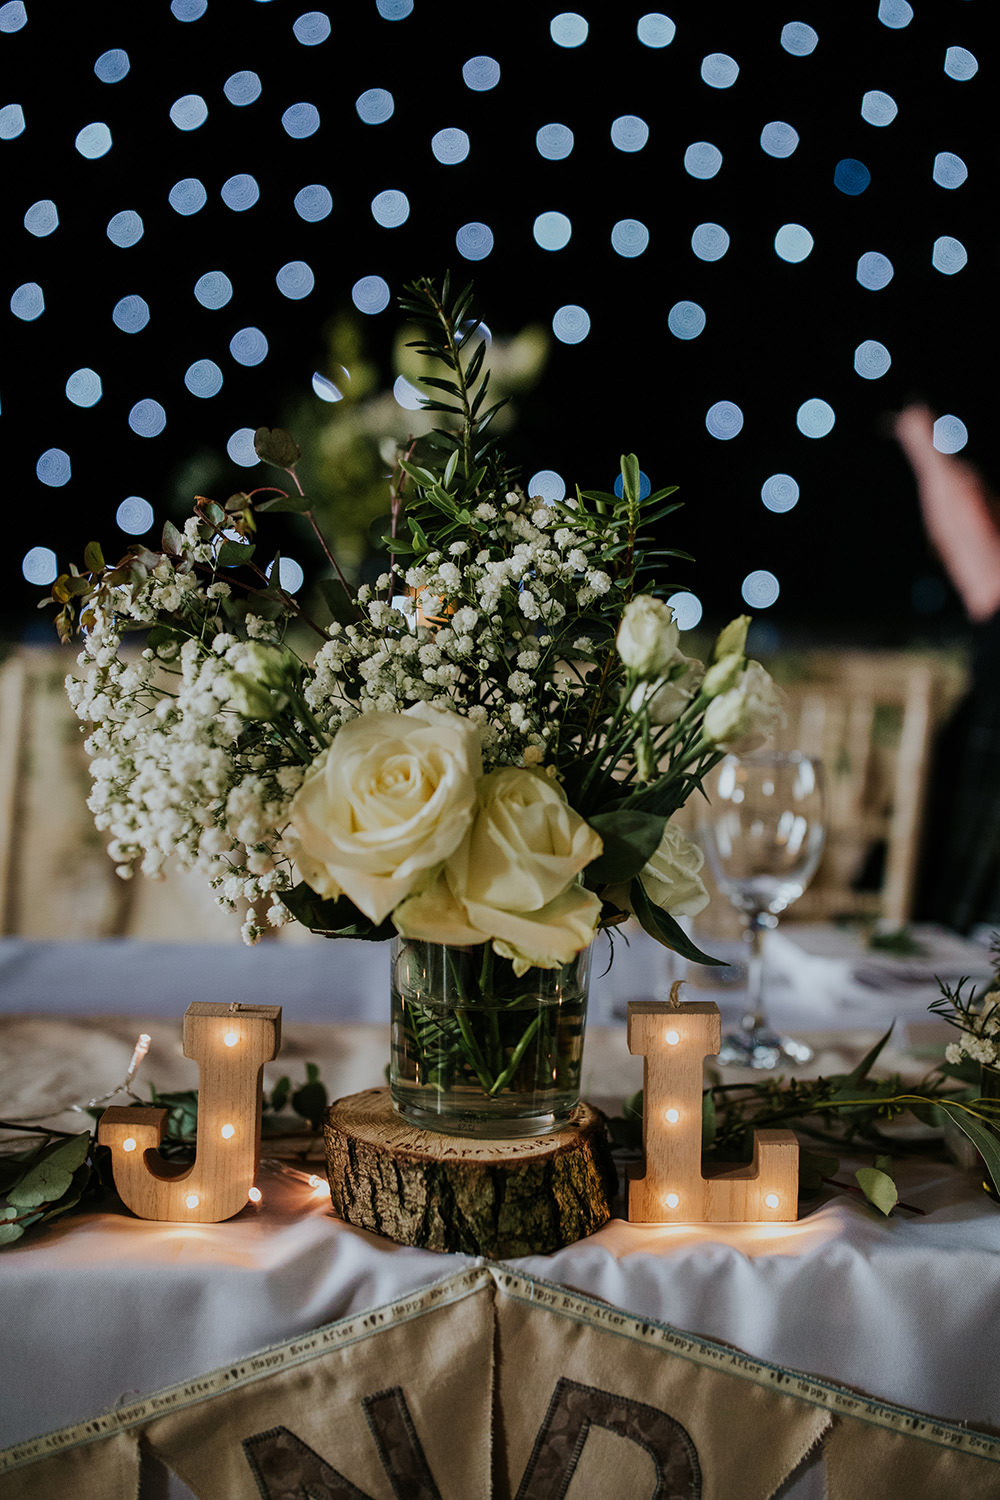 Greenery Flowers Jar Log Stand Lights Centrepice Table White Rose Scandi Foliage Wedding Ross Alexander Photography